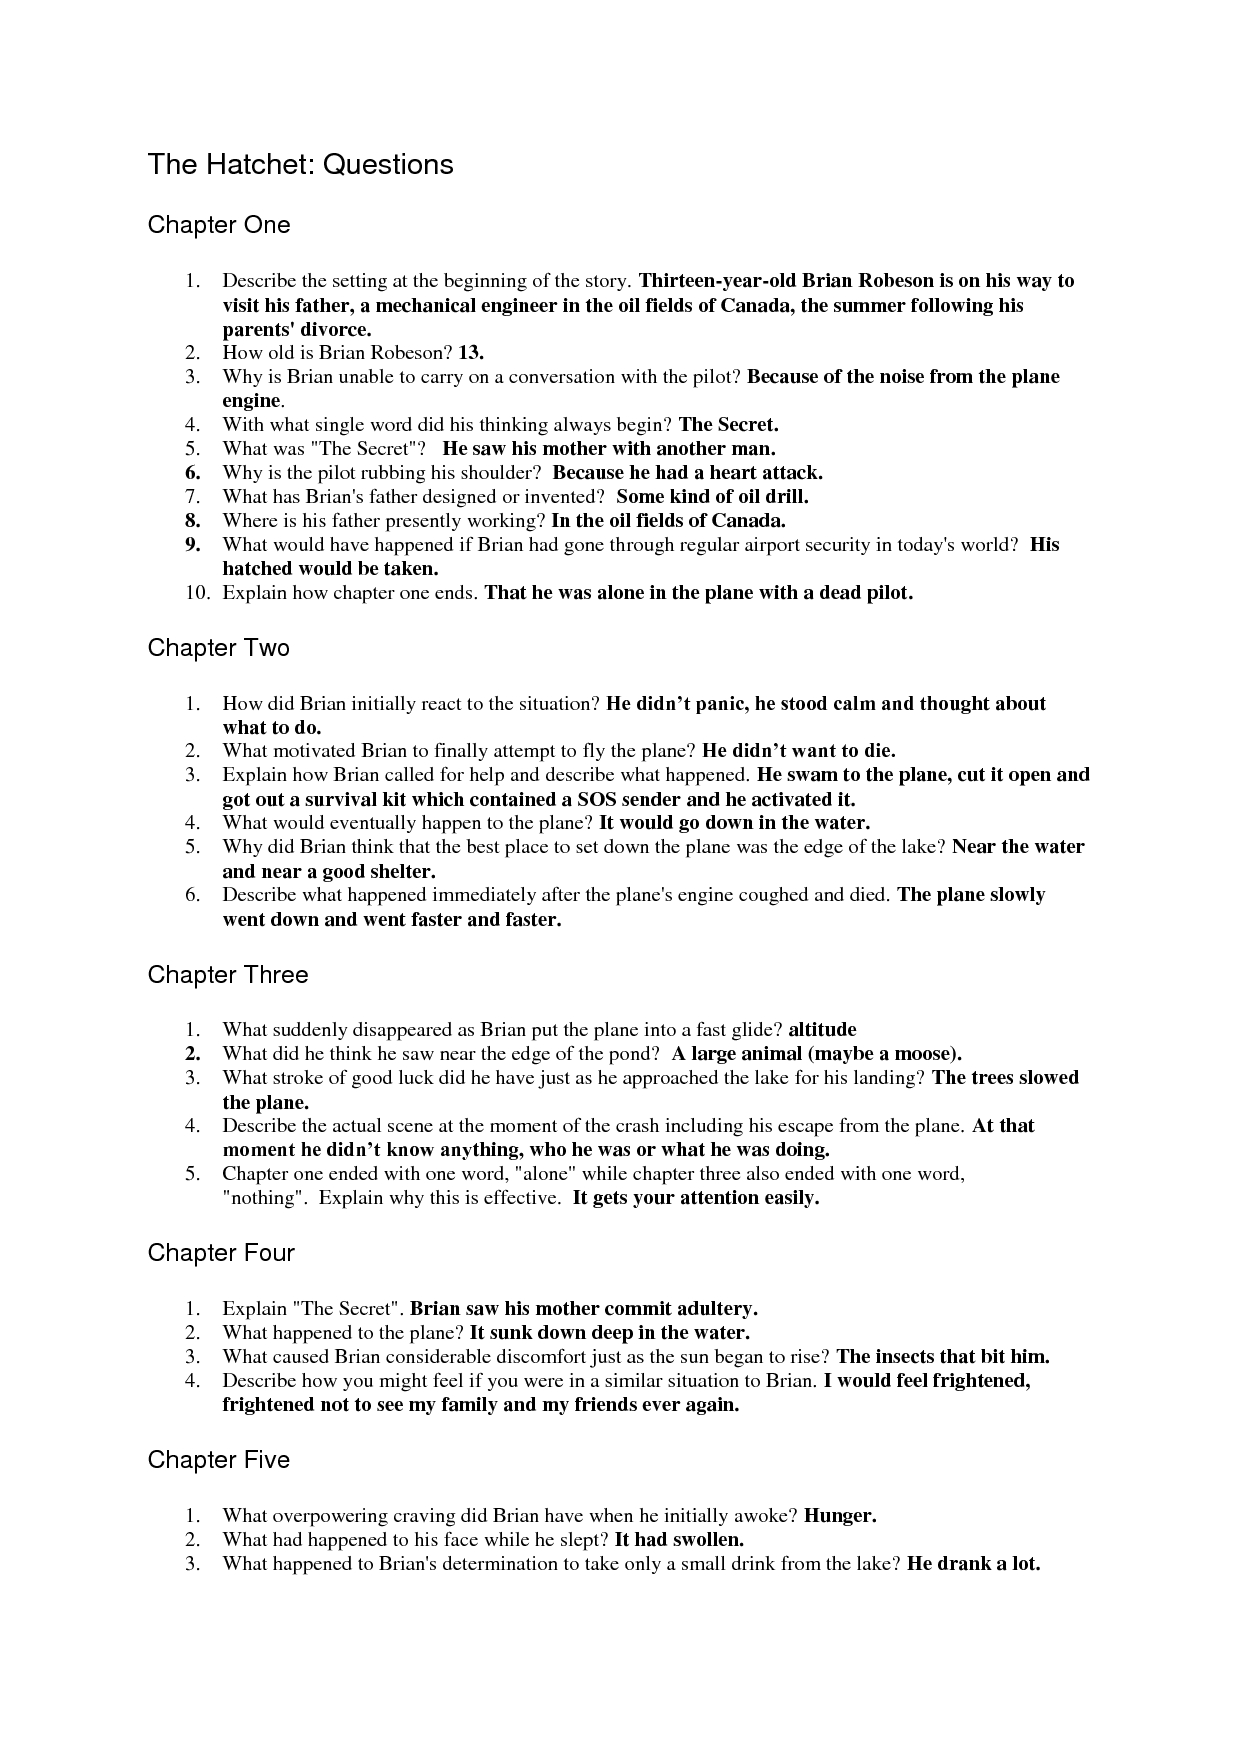 The Hatchet Question Sheet - Answers | Questions | Essay Questions | Hatchet Worksheets Printable